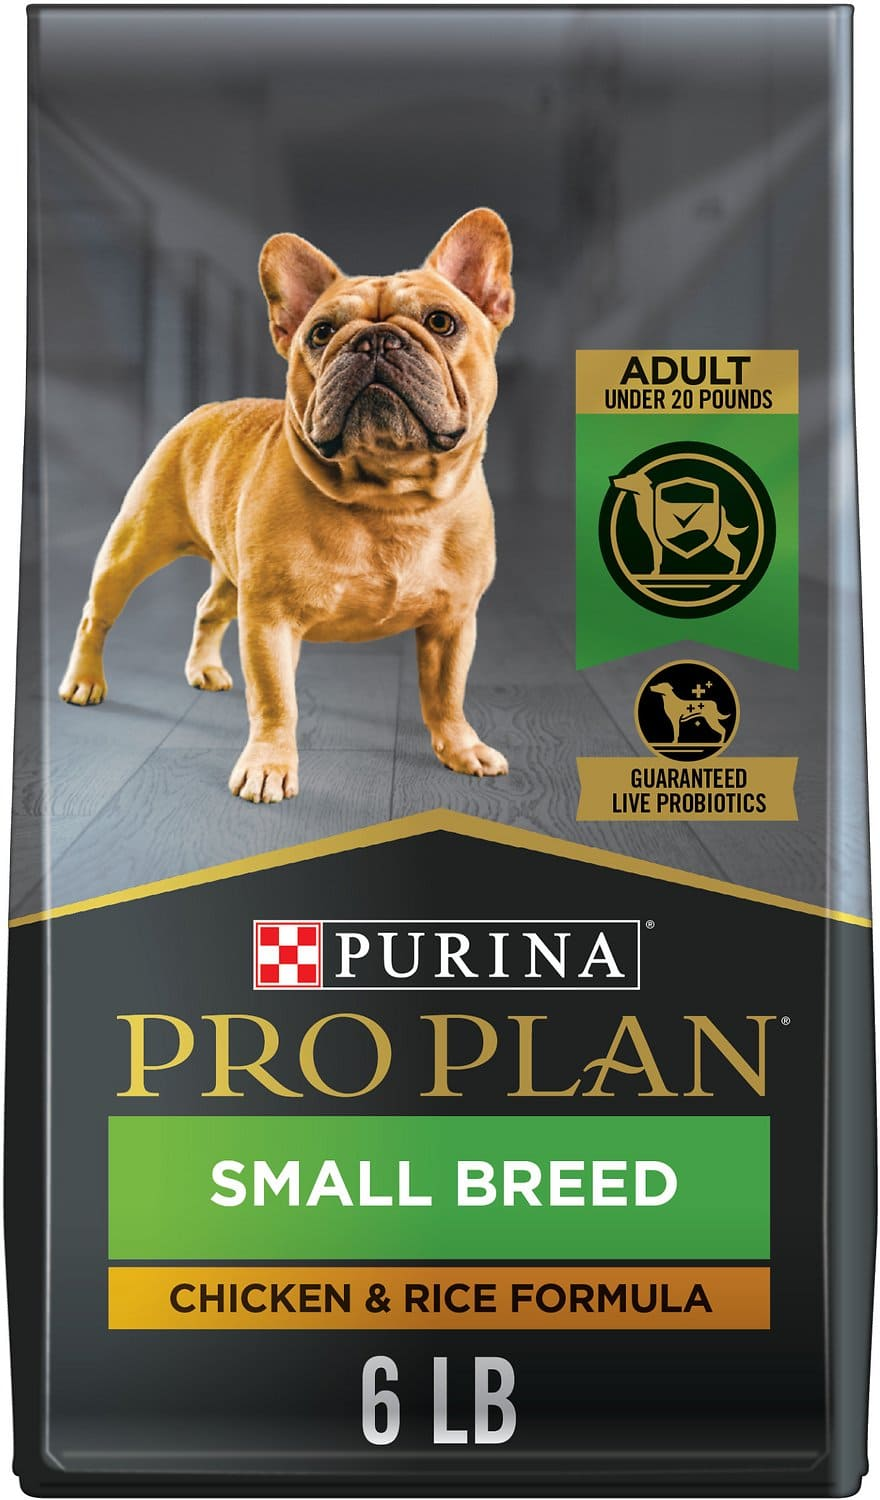 Purina Pro Plan Adult Small Breed 6 lbs Chicken & Rice 1